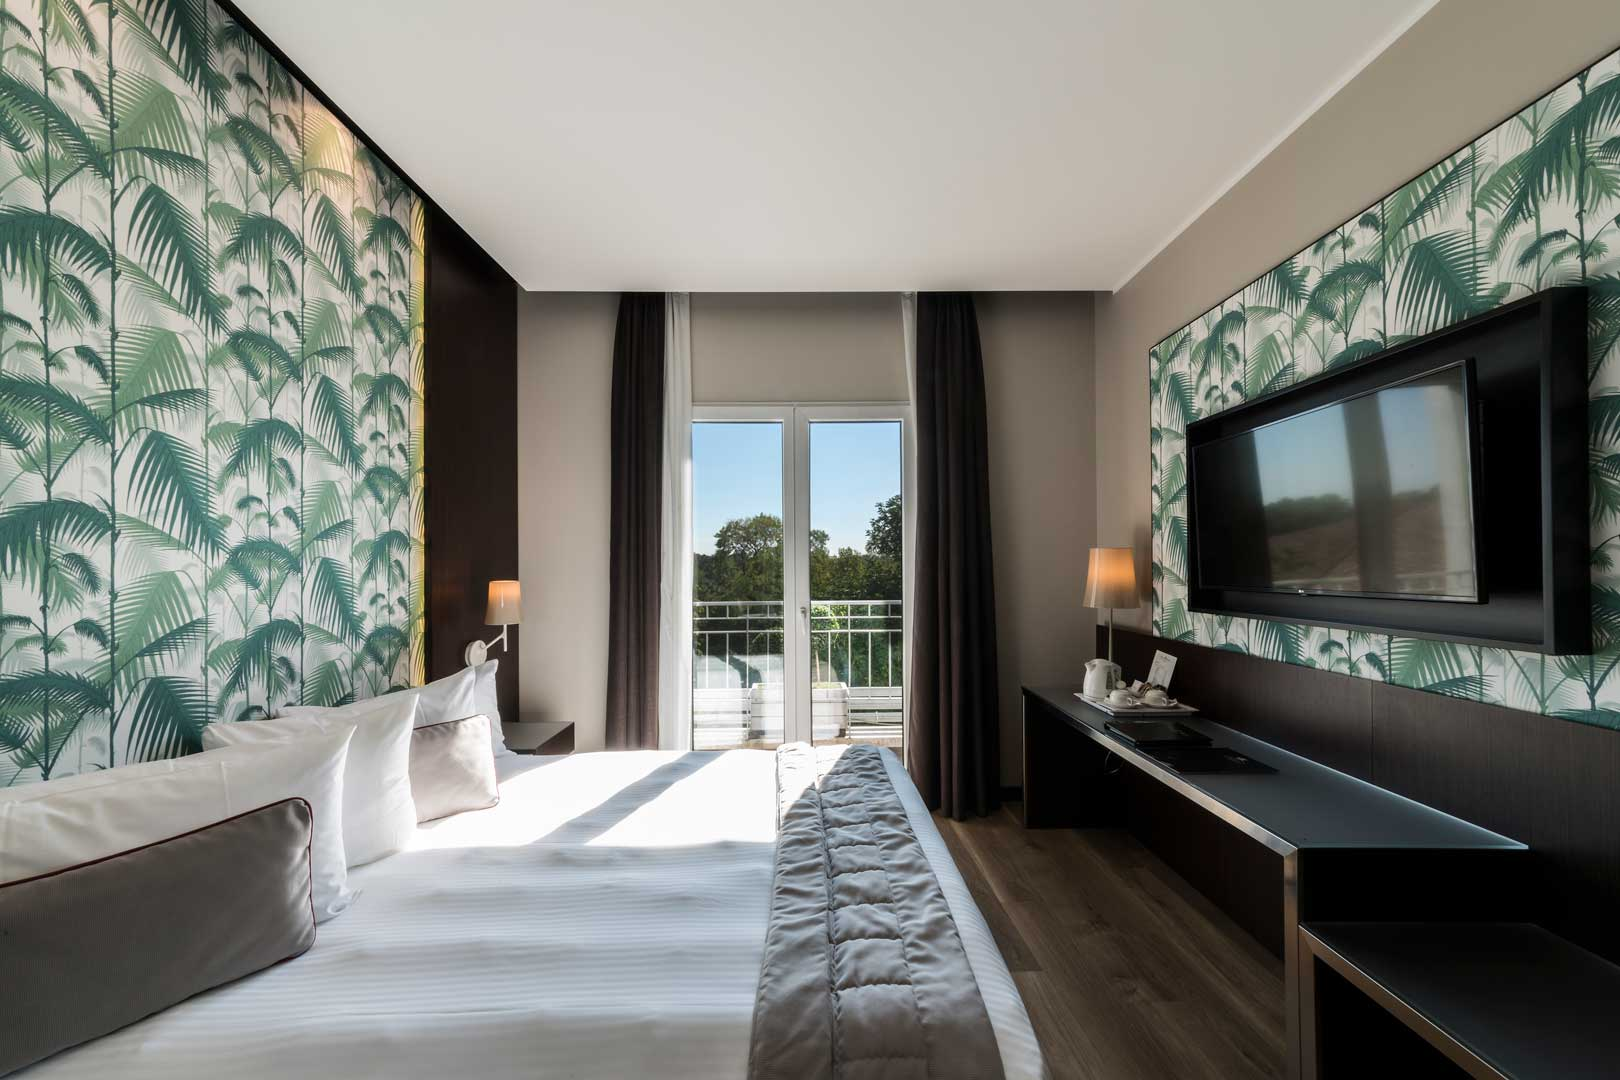 Hotel Manin | Panoramic Room